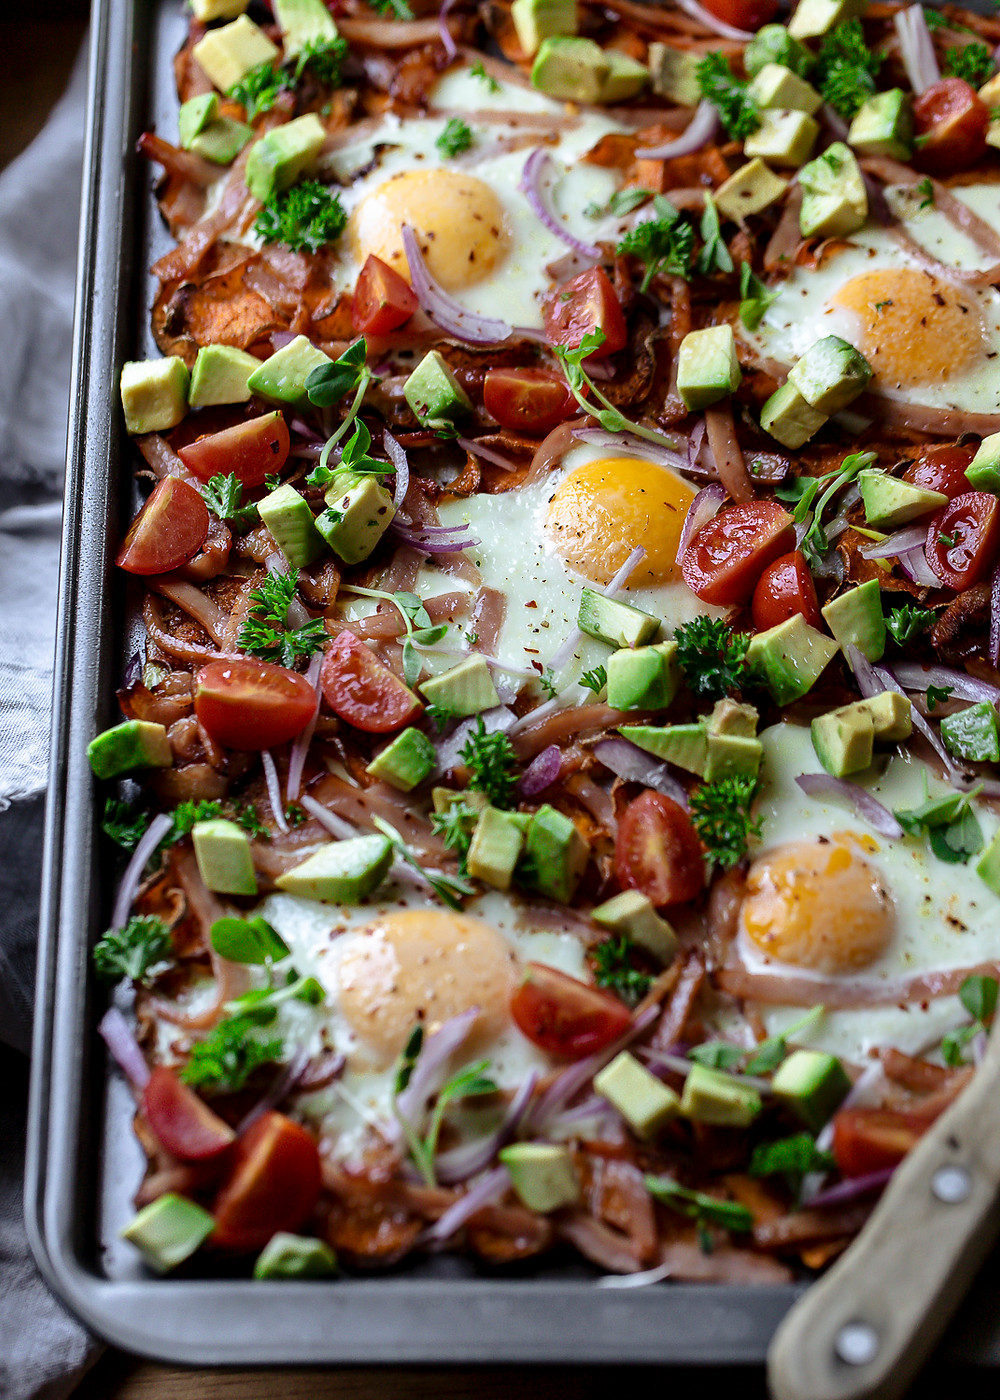 Nacho Bacon and Eggs